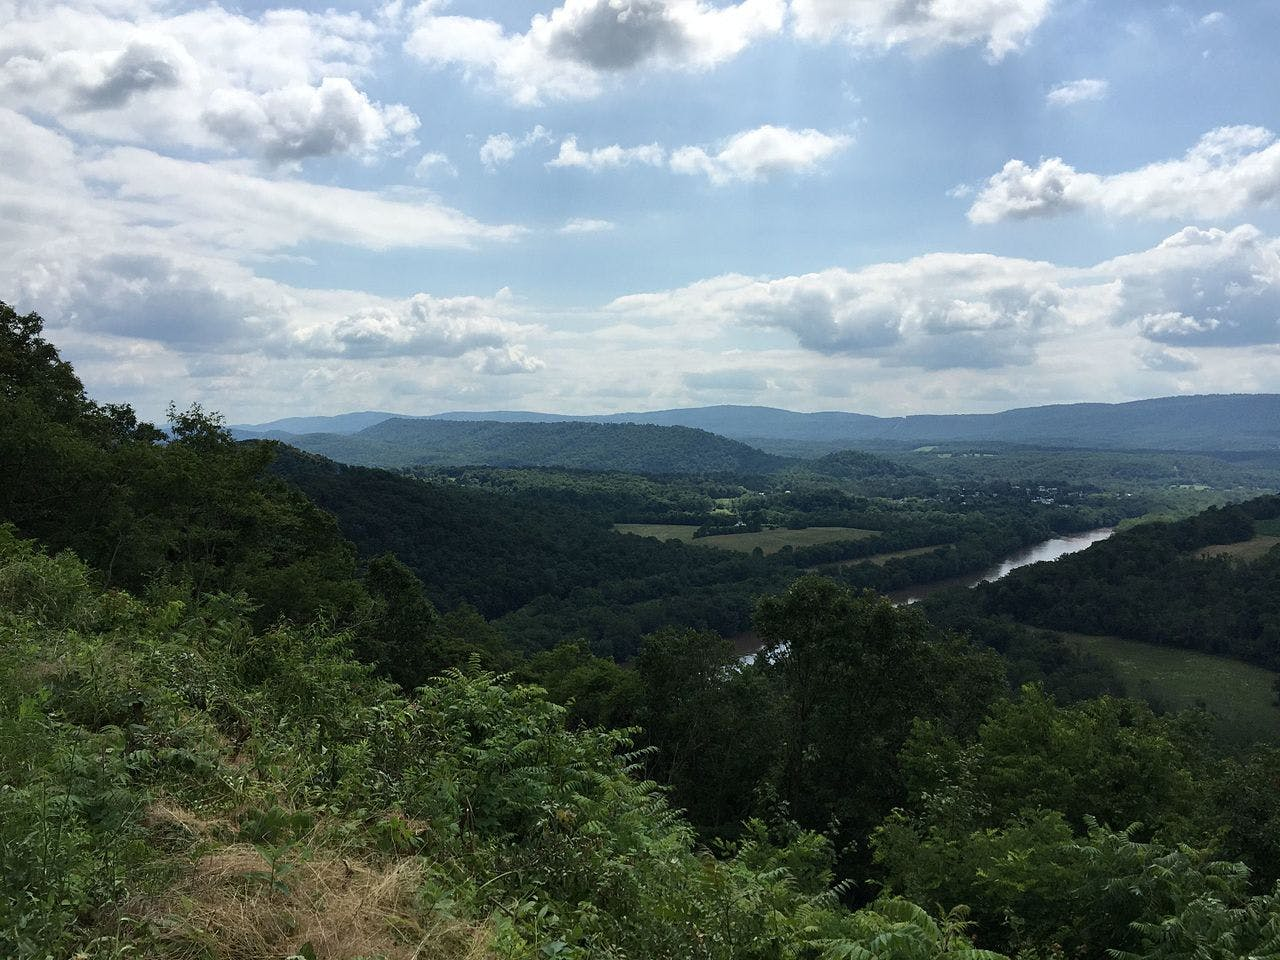 View of the Potomac River from the top of a hill